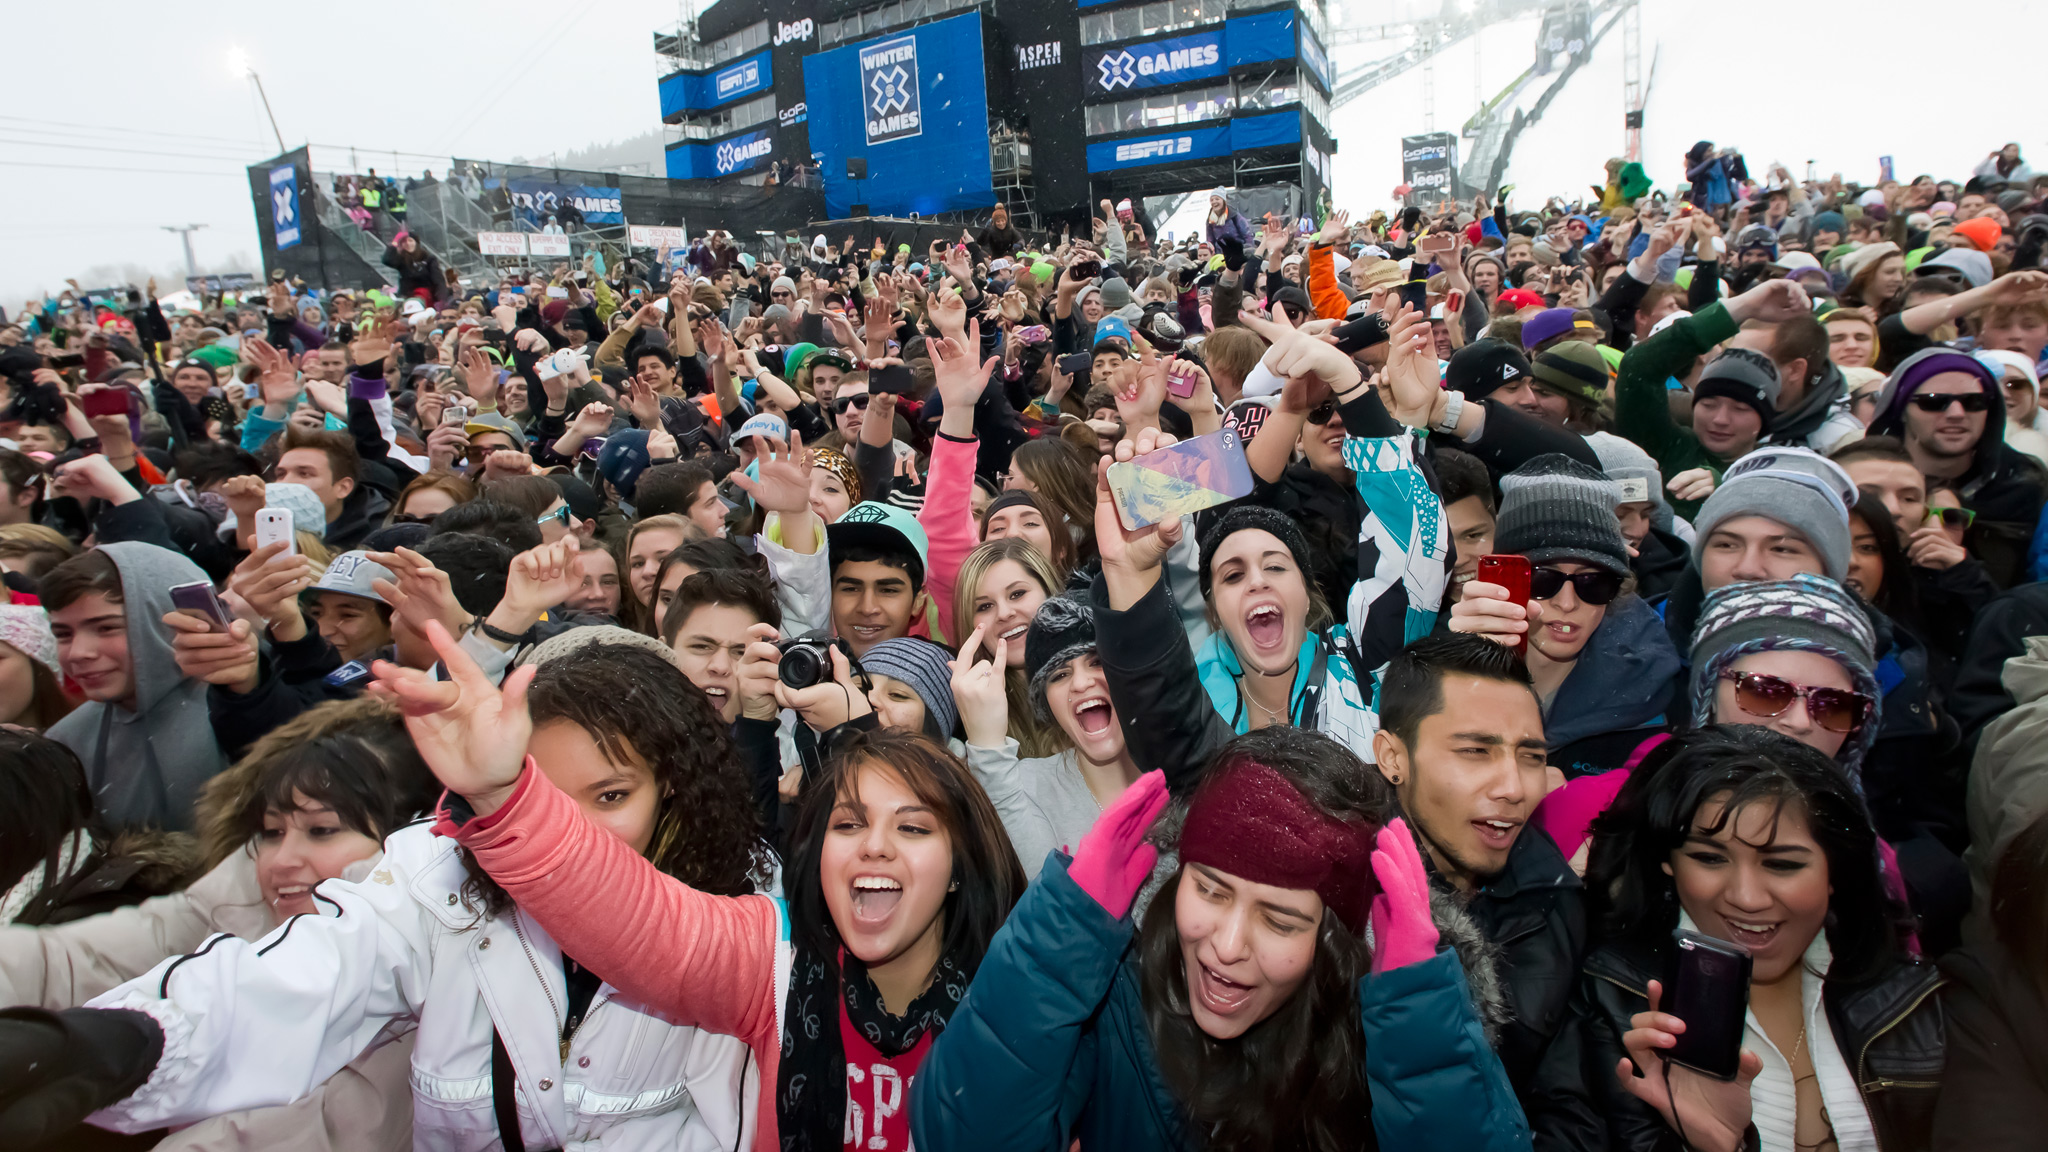 If the crowd count for Calvin Harris at X Games Aspen 2013 is any indication, the X Games MUSIC showcase in Tignes, France, should go off.